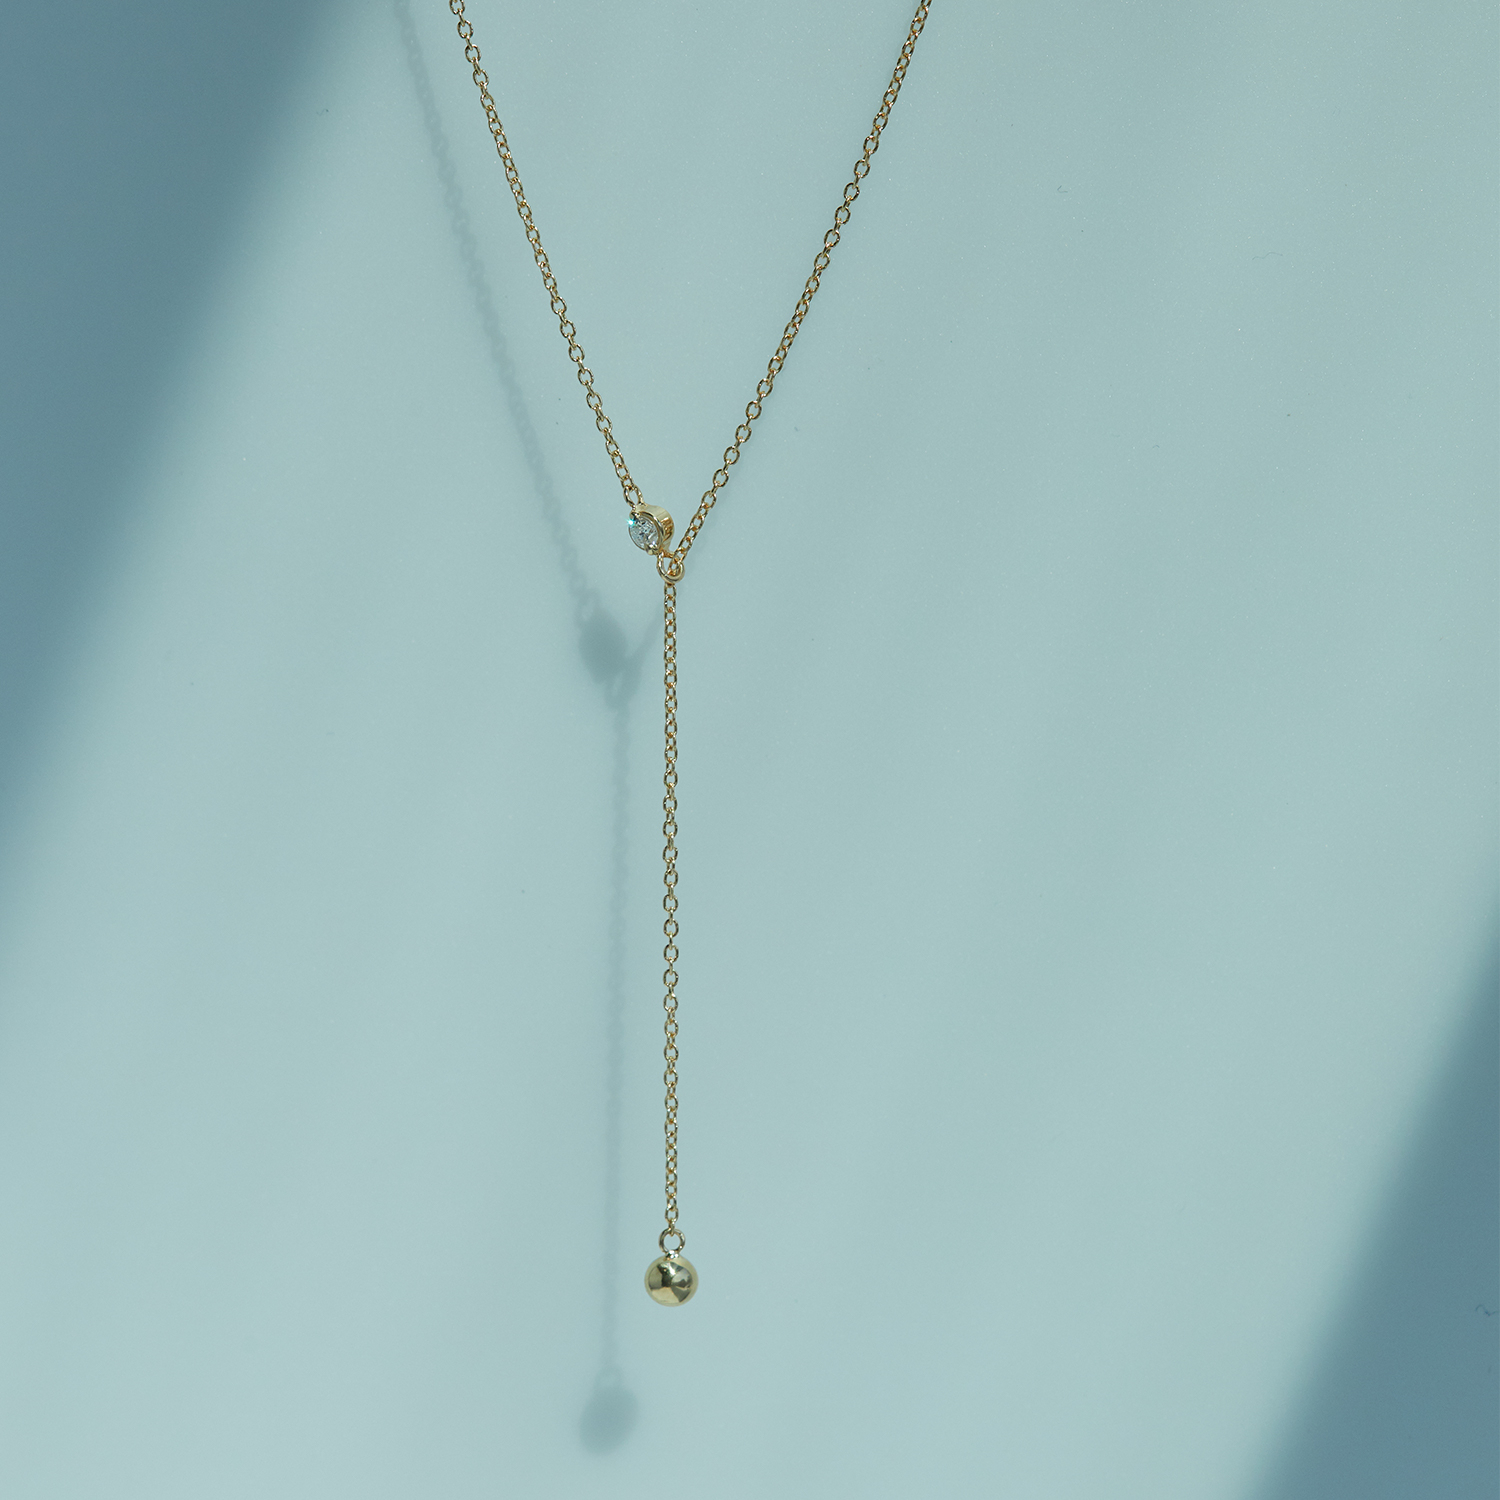 Diamond Greco Lariat Necklace With Regard To Most Recent Round Brilliant Diamond Lariat Necklaces (View 5 of 25)